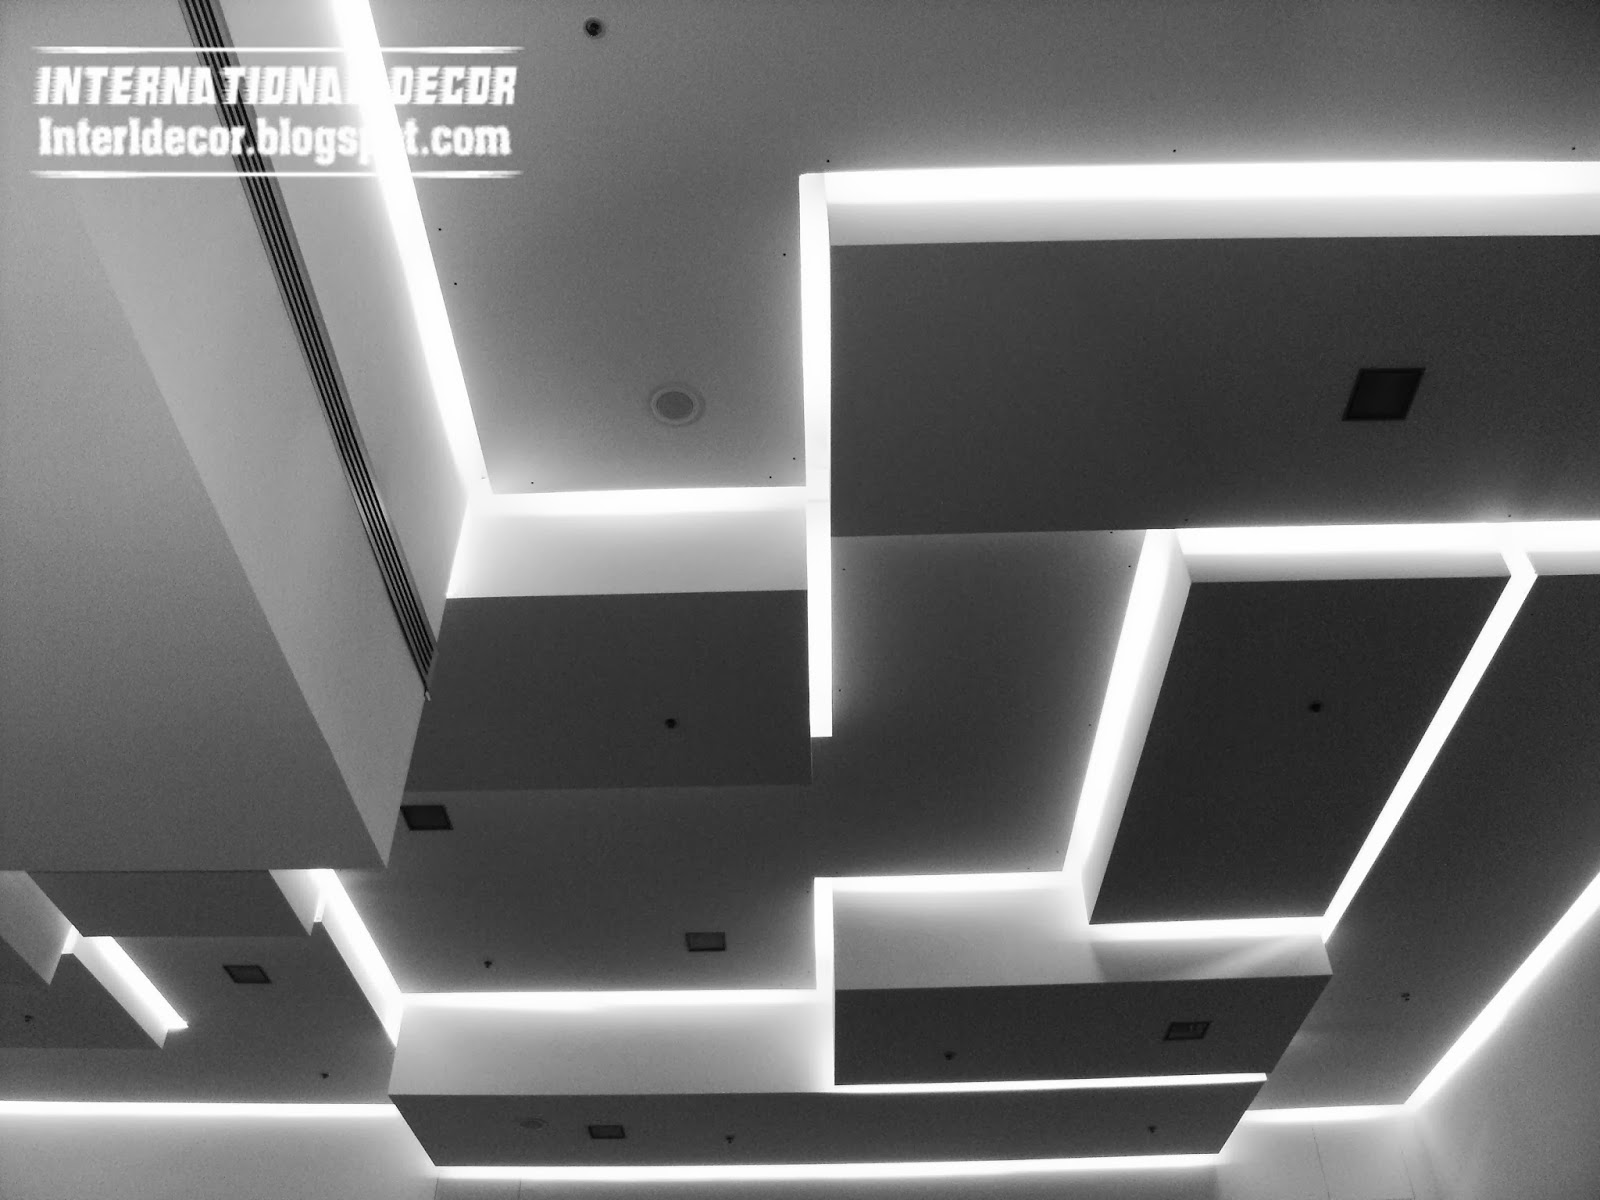 LED ceiling lighting ideas 2014, Drop ceiling pop design interior 2014